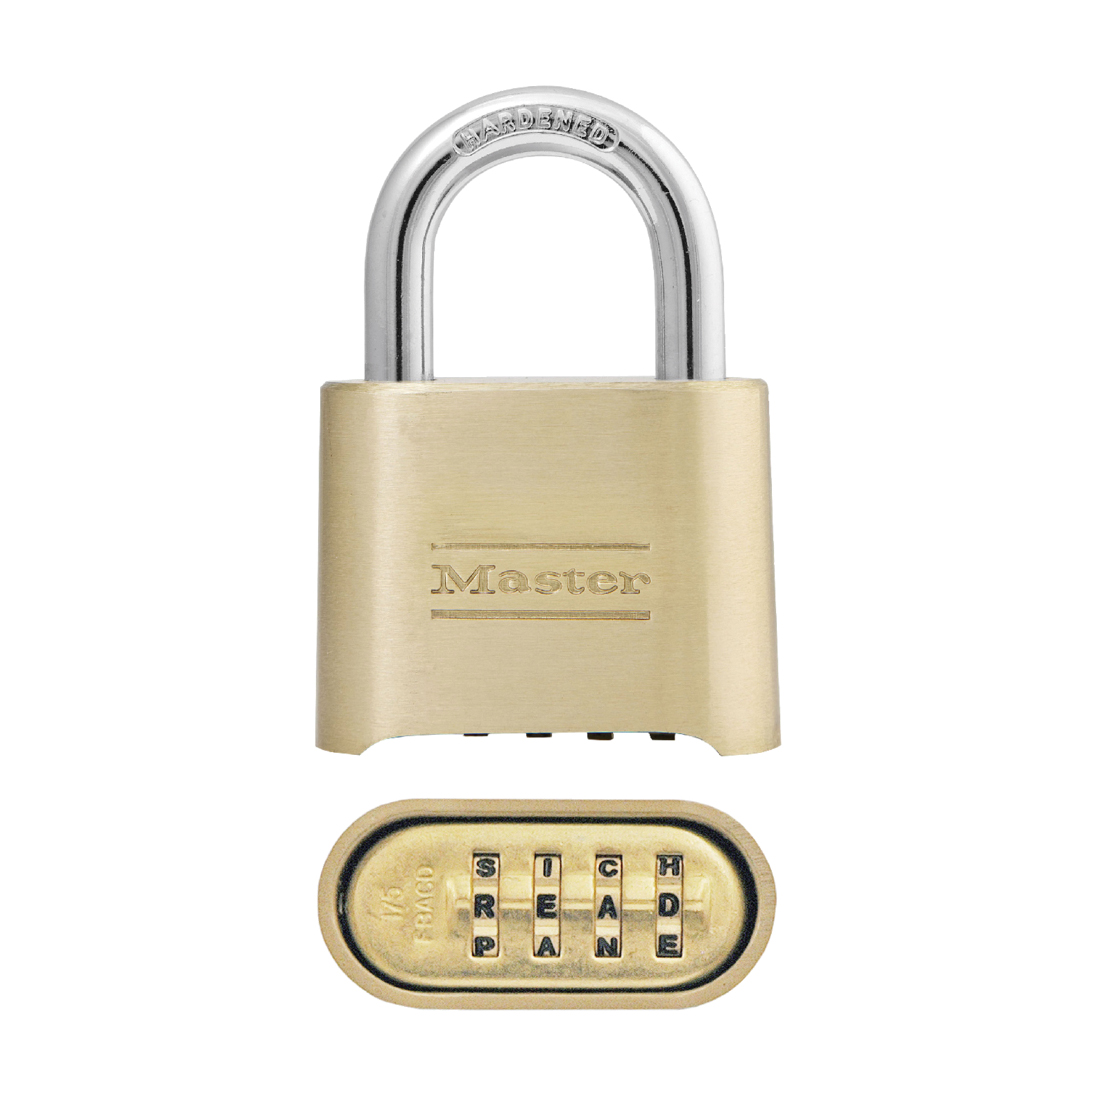 Master Lock® 140KAD Safety Padlock, Alike Key, 1/4 in Shackle, Solid Brass Body, 4-Pin Tumbler Locking